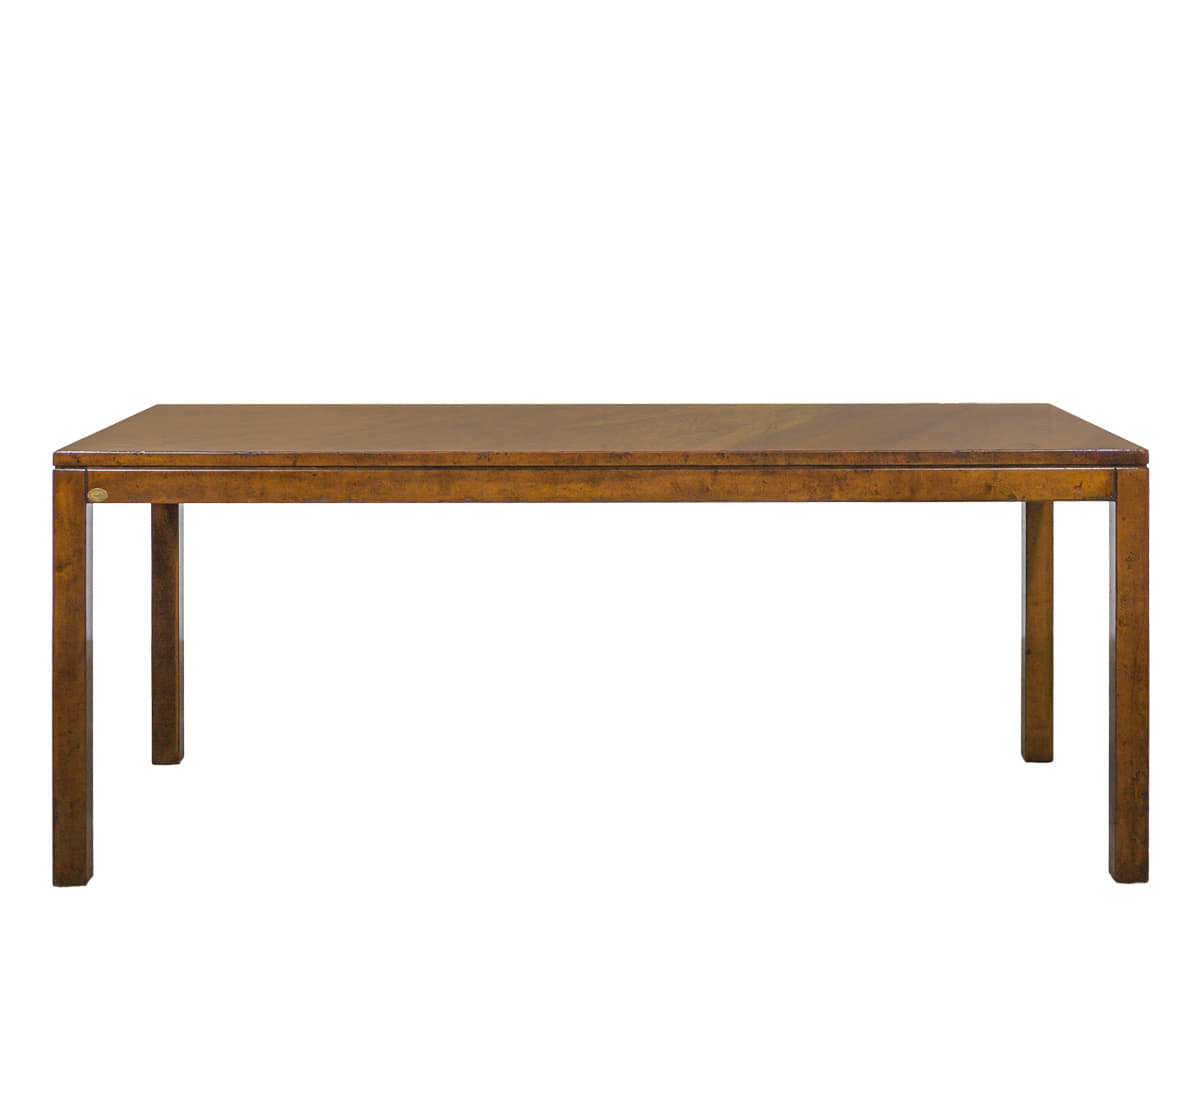 ARCA Dining Table 알카 식탁